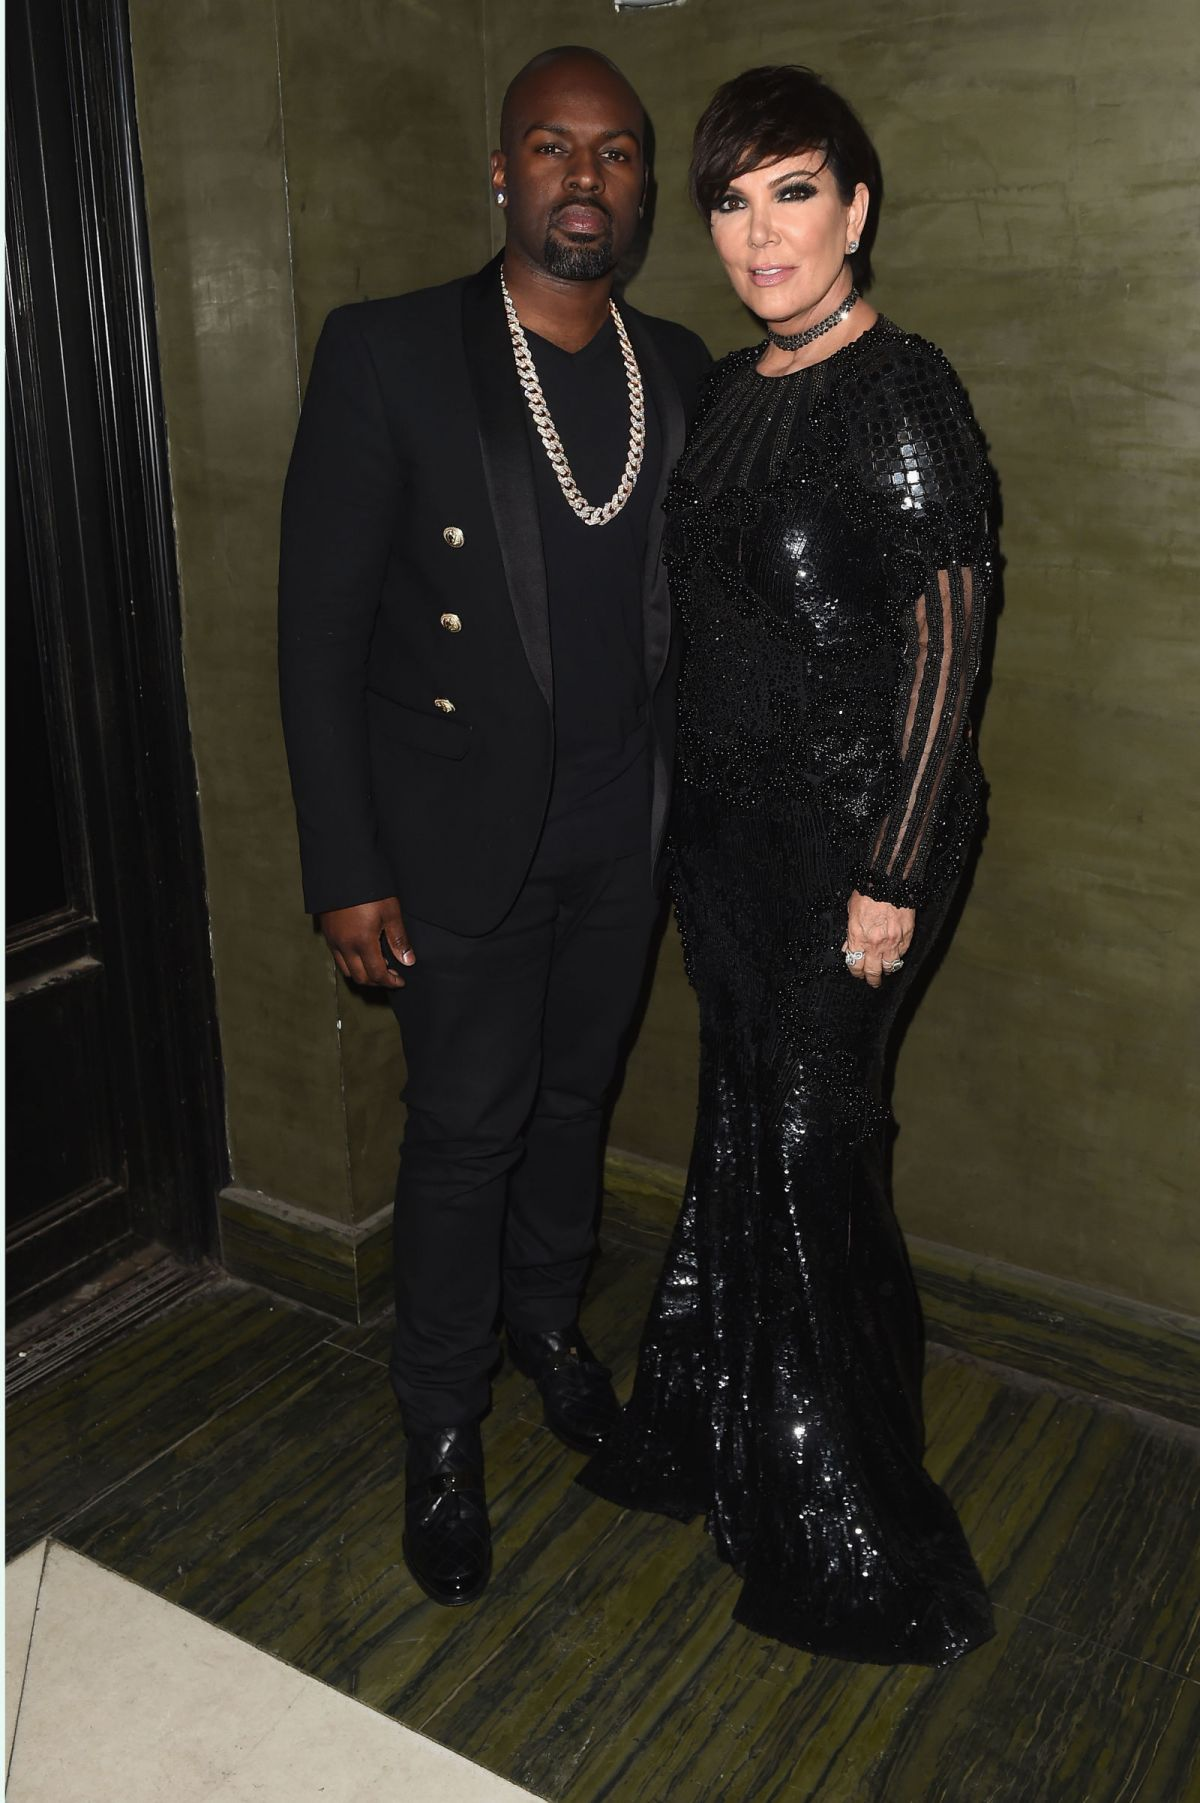 KRIS JENNER at Met Gala After-party in New York 05/02/2016